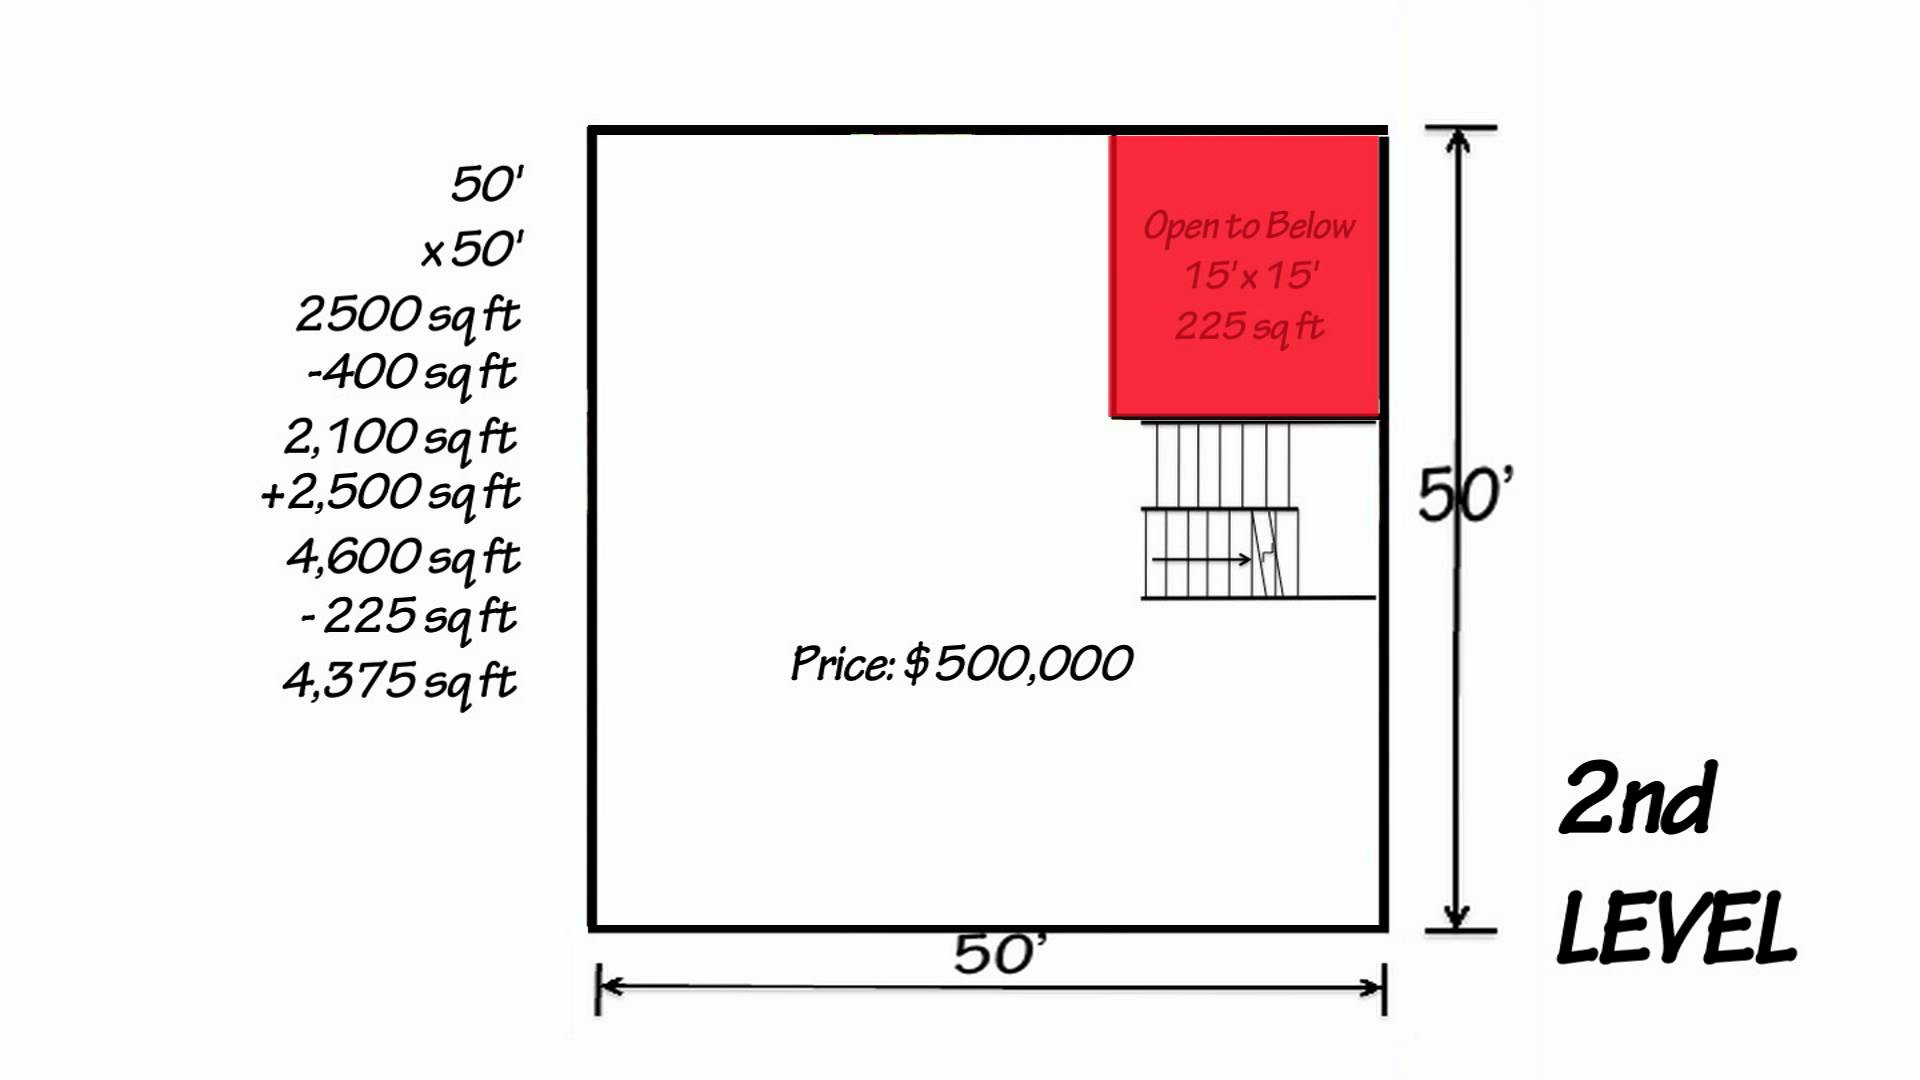 How to measure my house for carpet carpet How to calculate room size in square feet